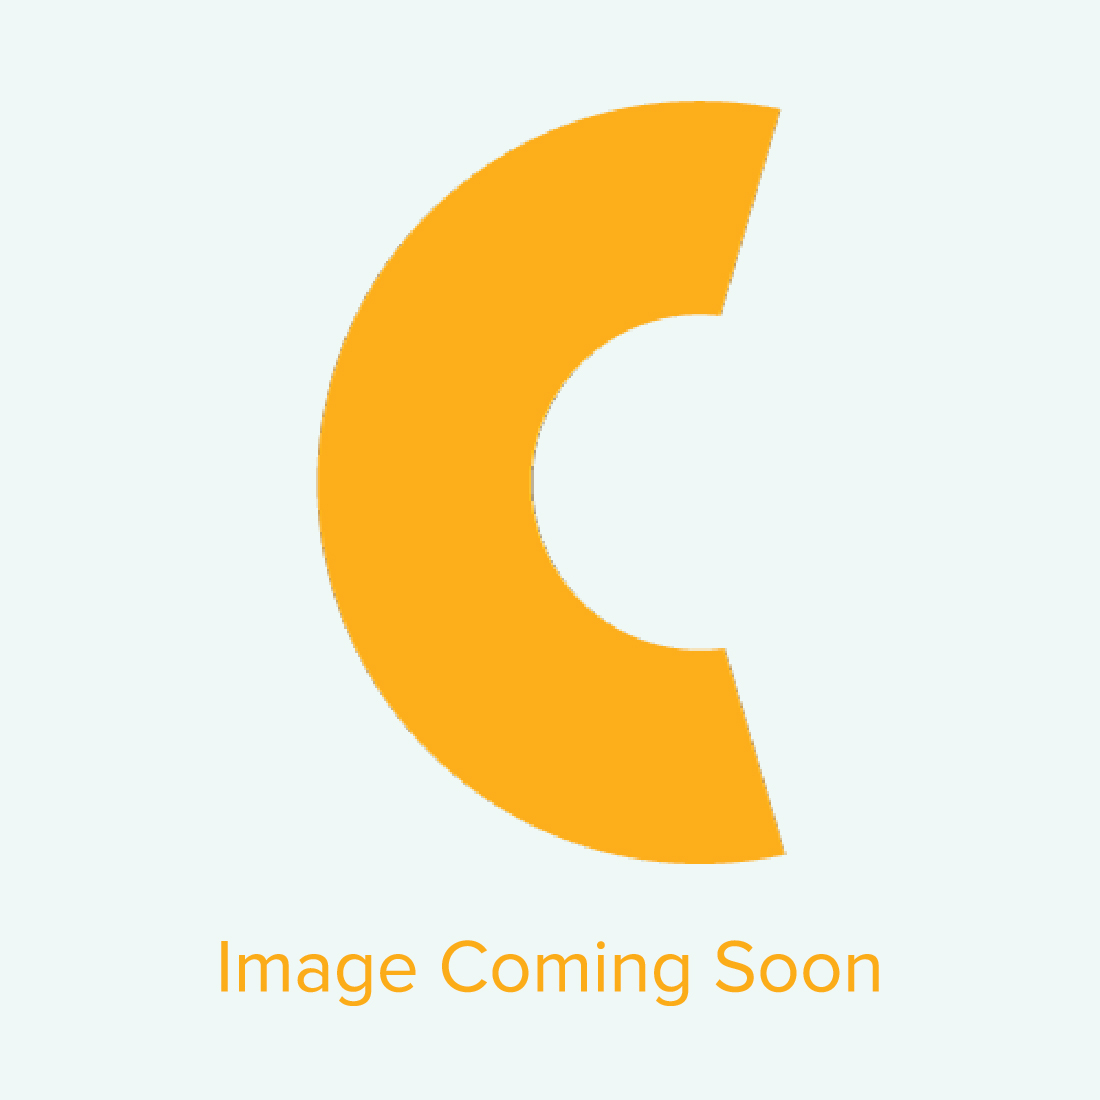 Brother ScanNCut SDX Heat Transfer Vinyl Kit,Brother ScanNCut SDX New Features,Brother ScanNCut SDX Dimensions,,,,,Brother ScanNCut SDX Open,Brother ScanNCut SDX Tool Storage,Brother ScanNCut SDX Vinyl Cutter,Brother ScanNCut SDX